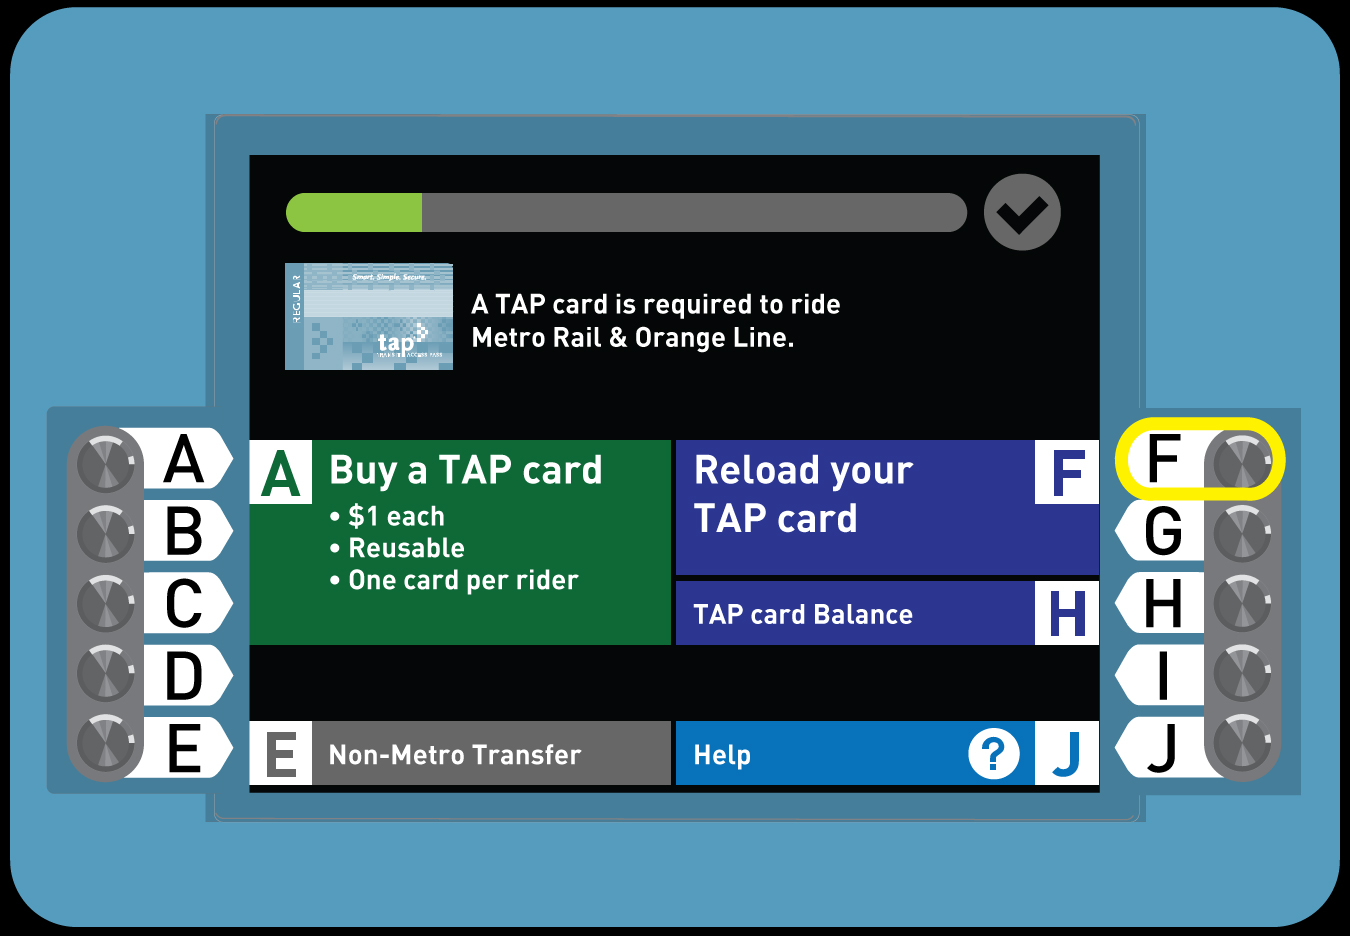 2. Buy a Senior TAP card with Stored Value